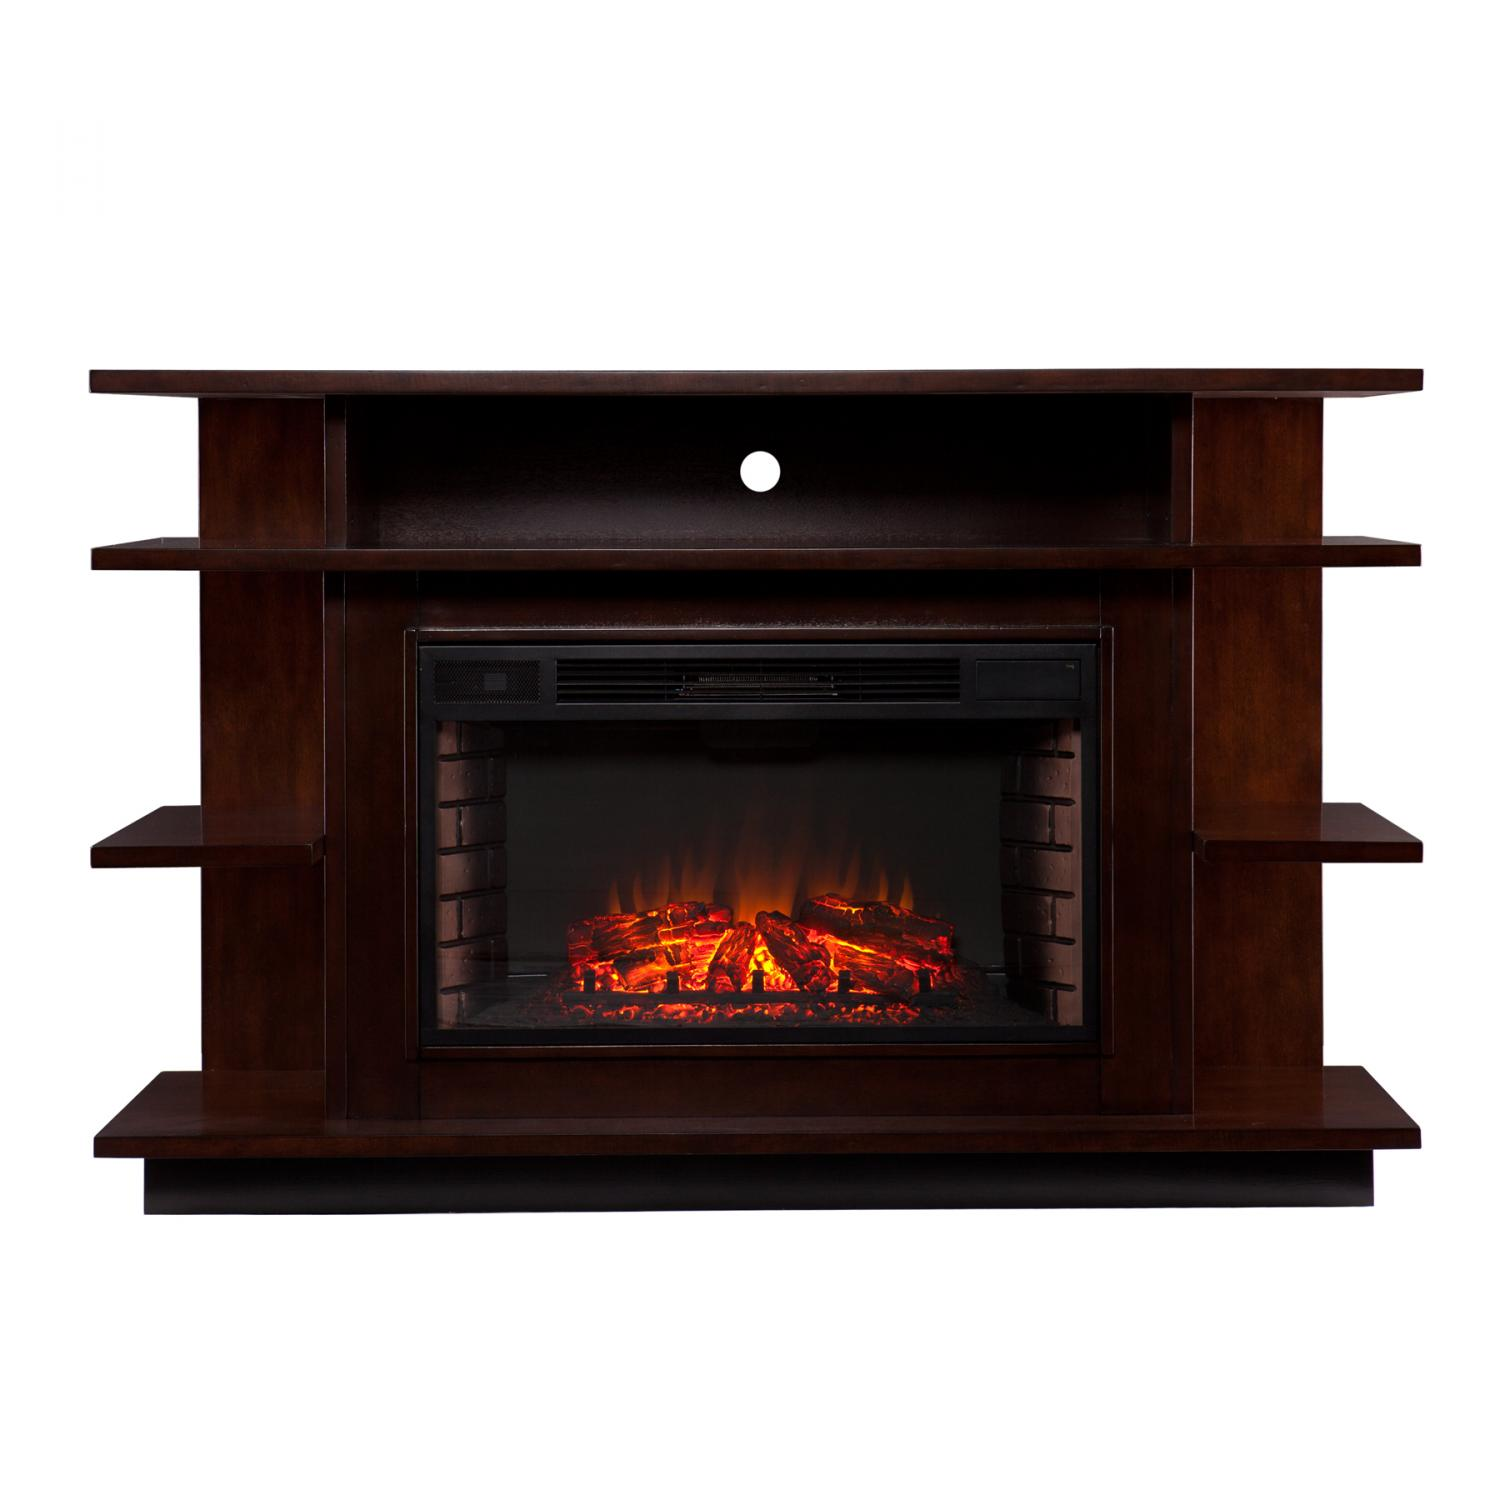 Granville Media Electric Fireplace Espresso Ebony Stain Southern Enterprises Inc Fe9031